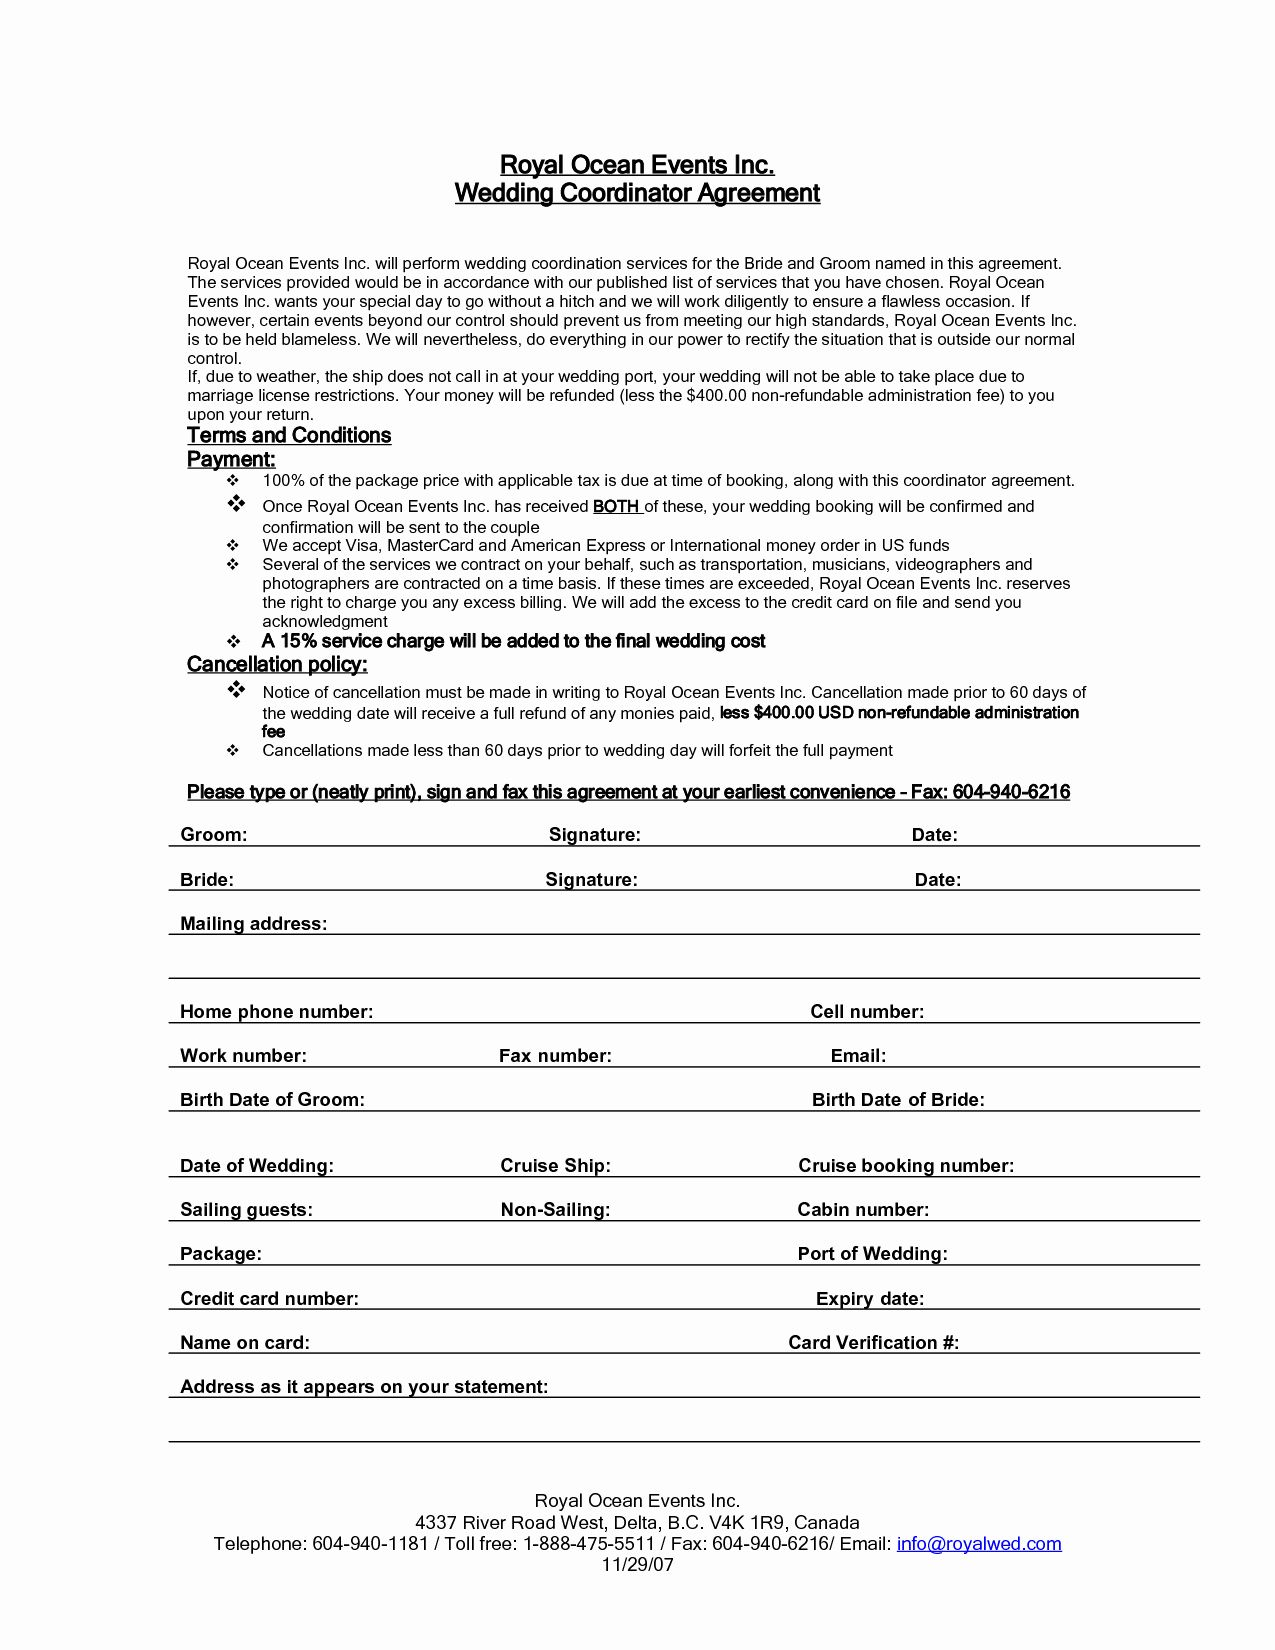 Event Planning Contract Template Free Beautiful Wedding Planner Contract Cover Letter Event Planning Contract Contract Template Event Planning Template Wedding planner contract template free